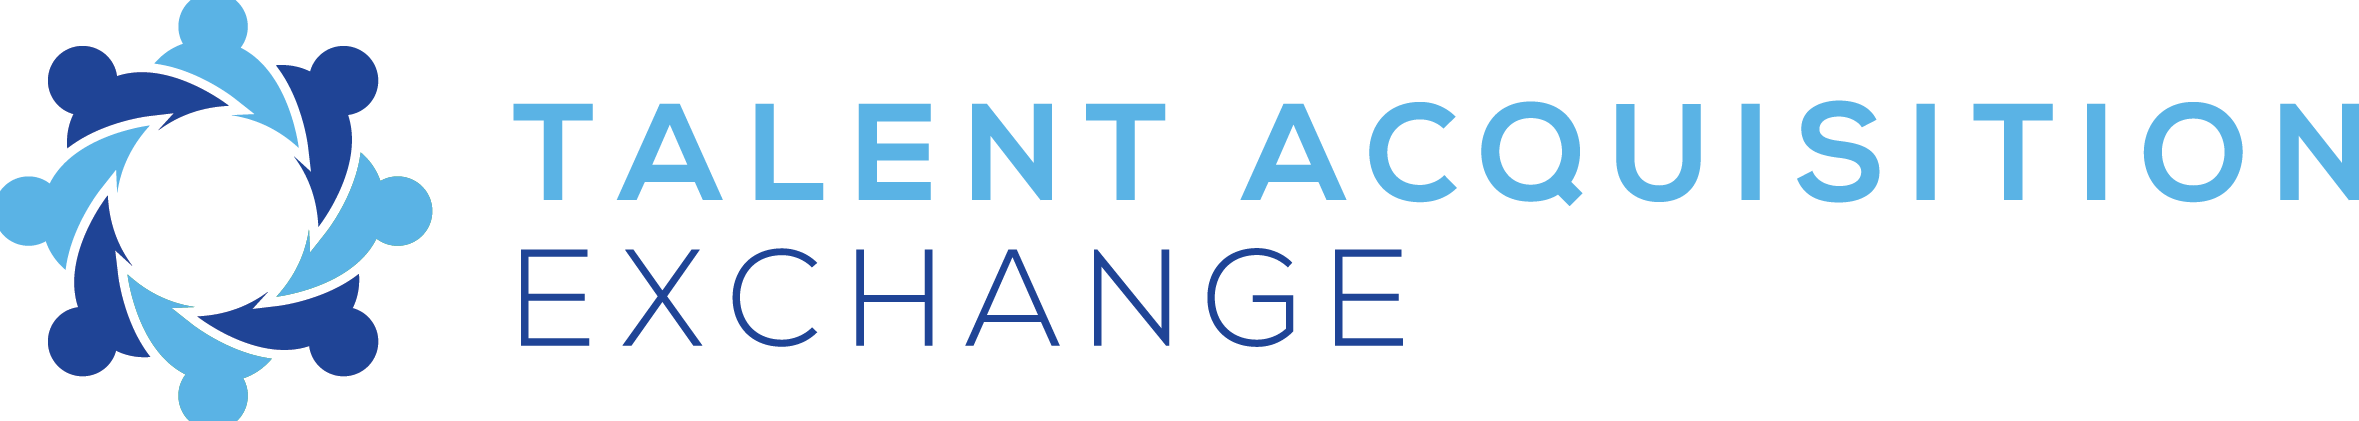 The 2019 Talent Acquisition Exchange Agenda